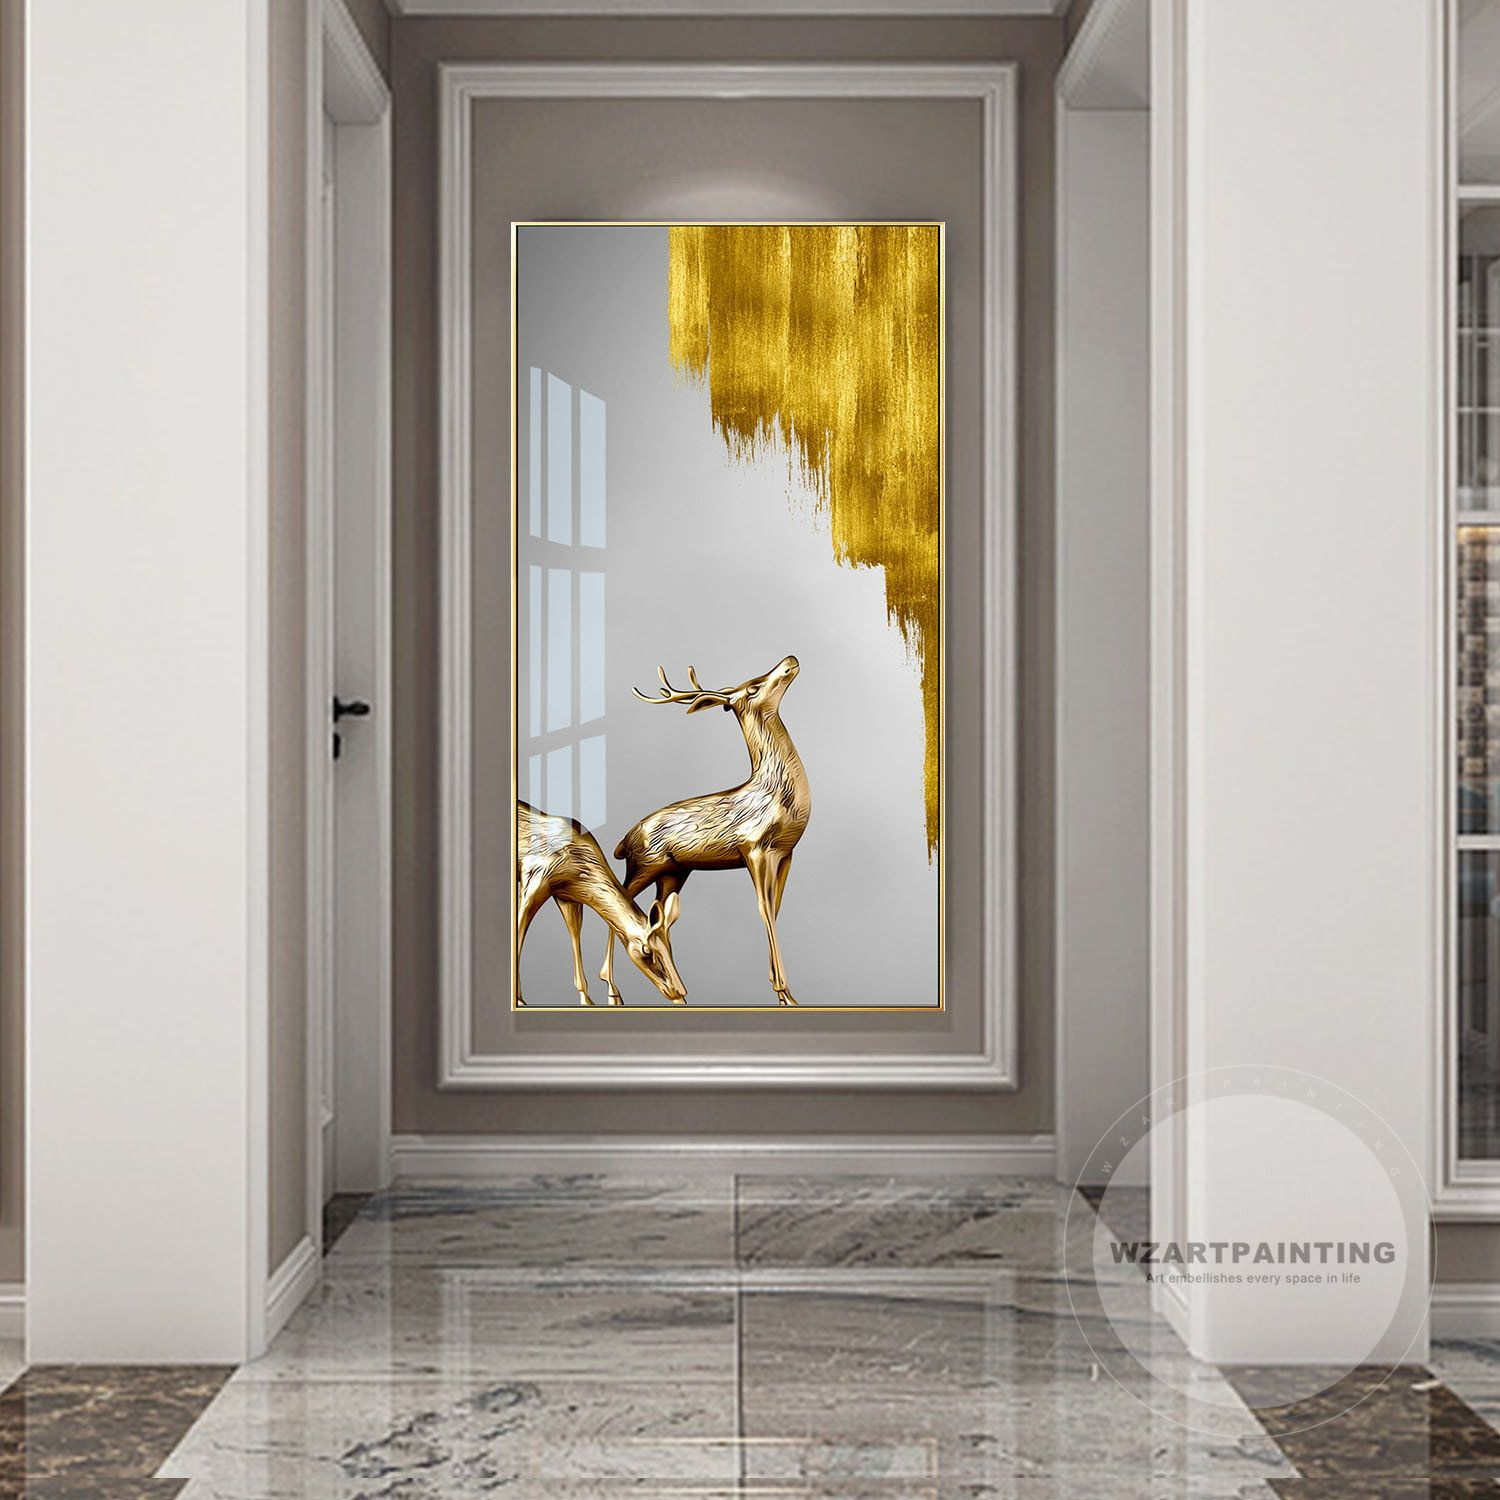 Framed Wall Art Gold Deer Animal Print Painting Digital Prints Chrismas Gifts On Canvas Picture Wall Art Canvas Picture Walls Wall Art Pictures Canvas Pictures